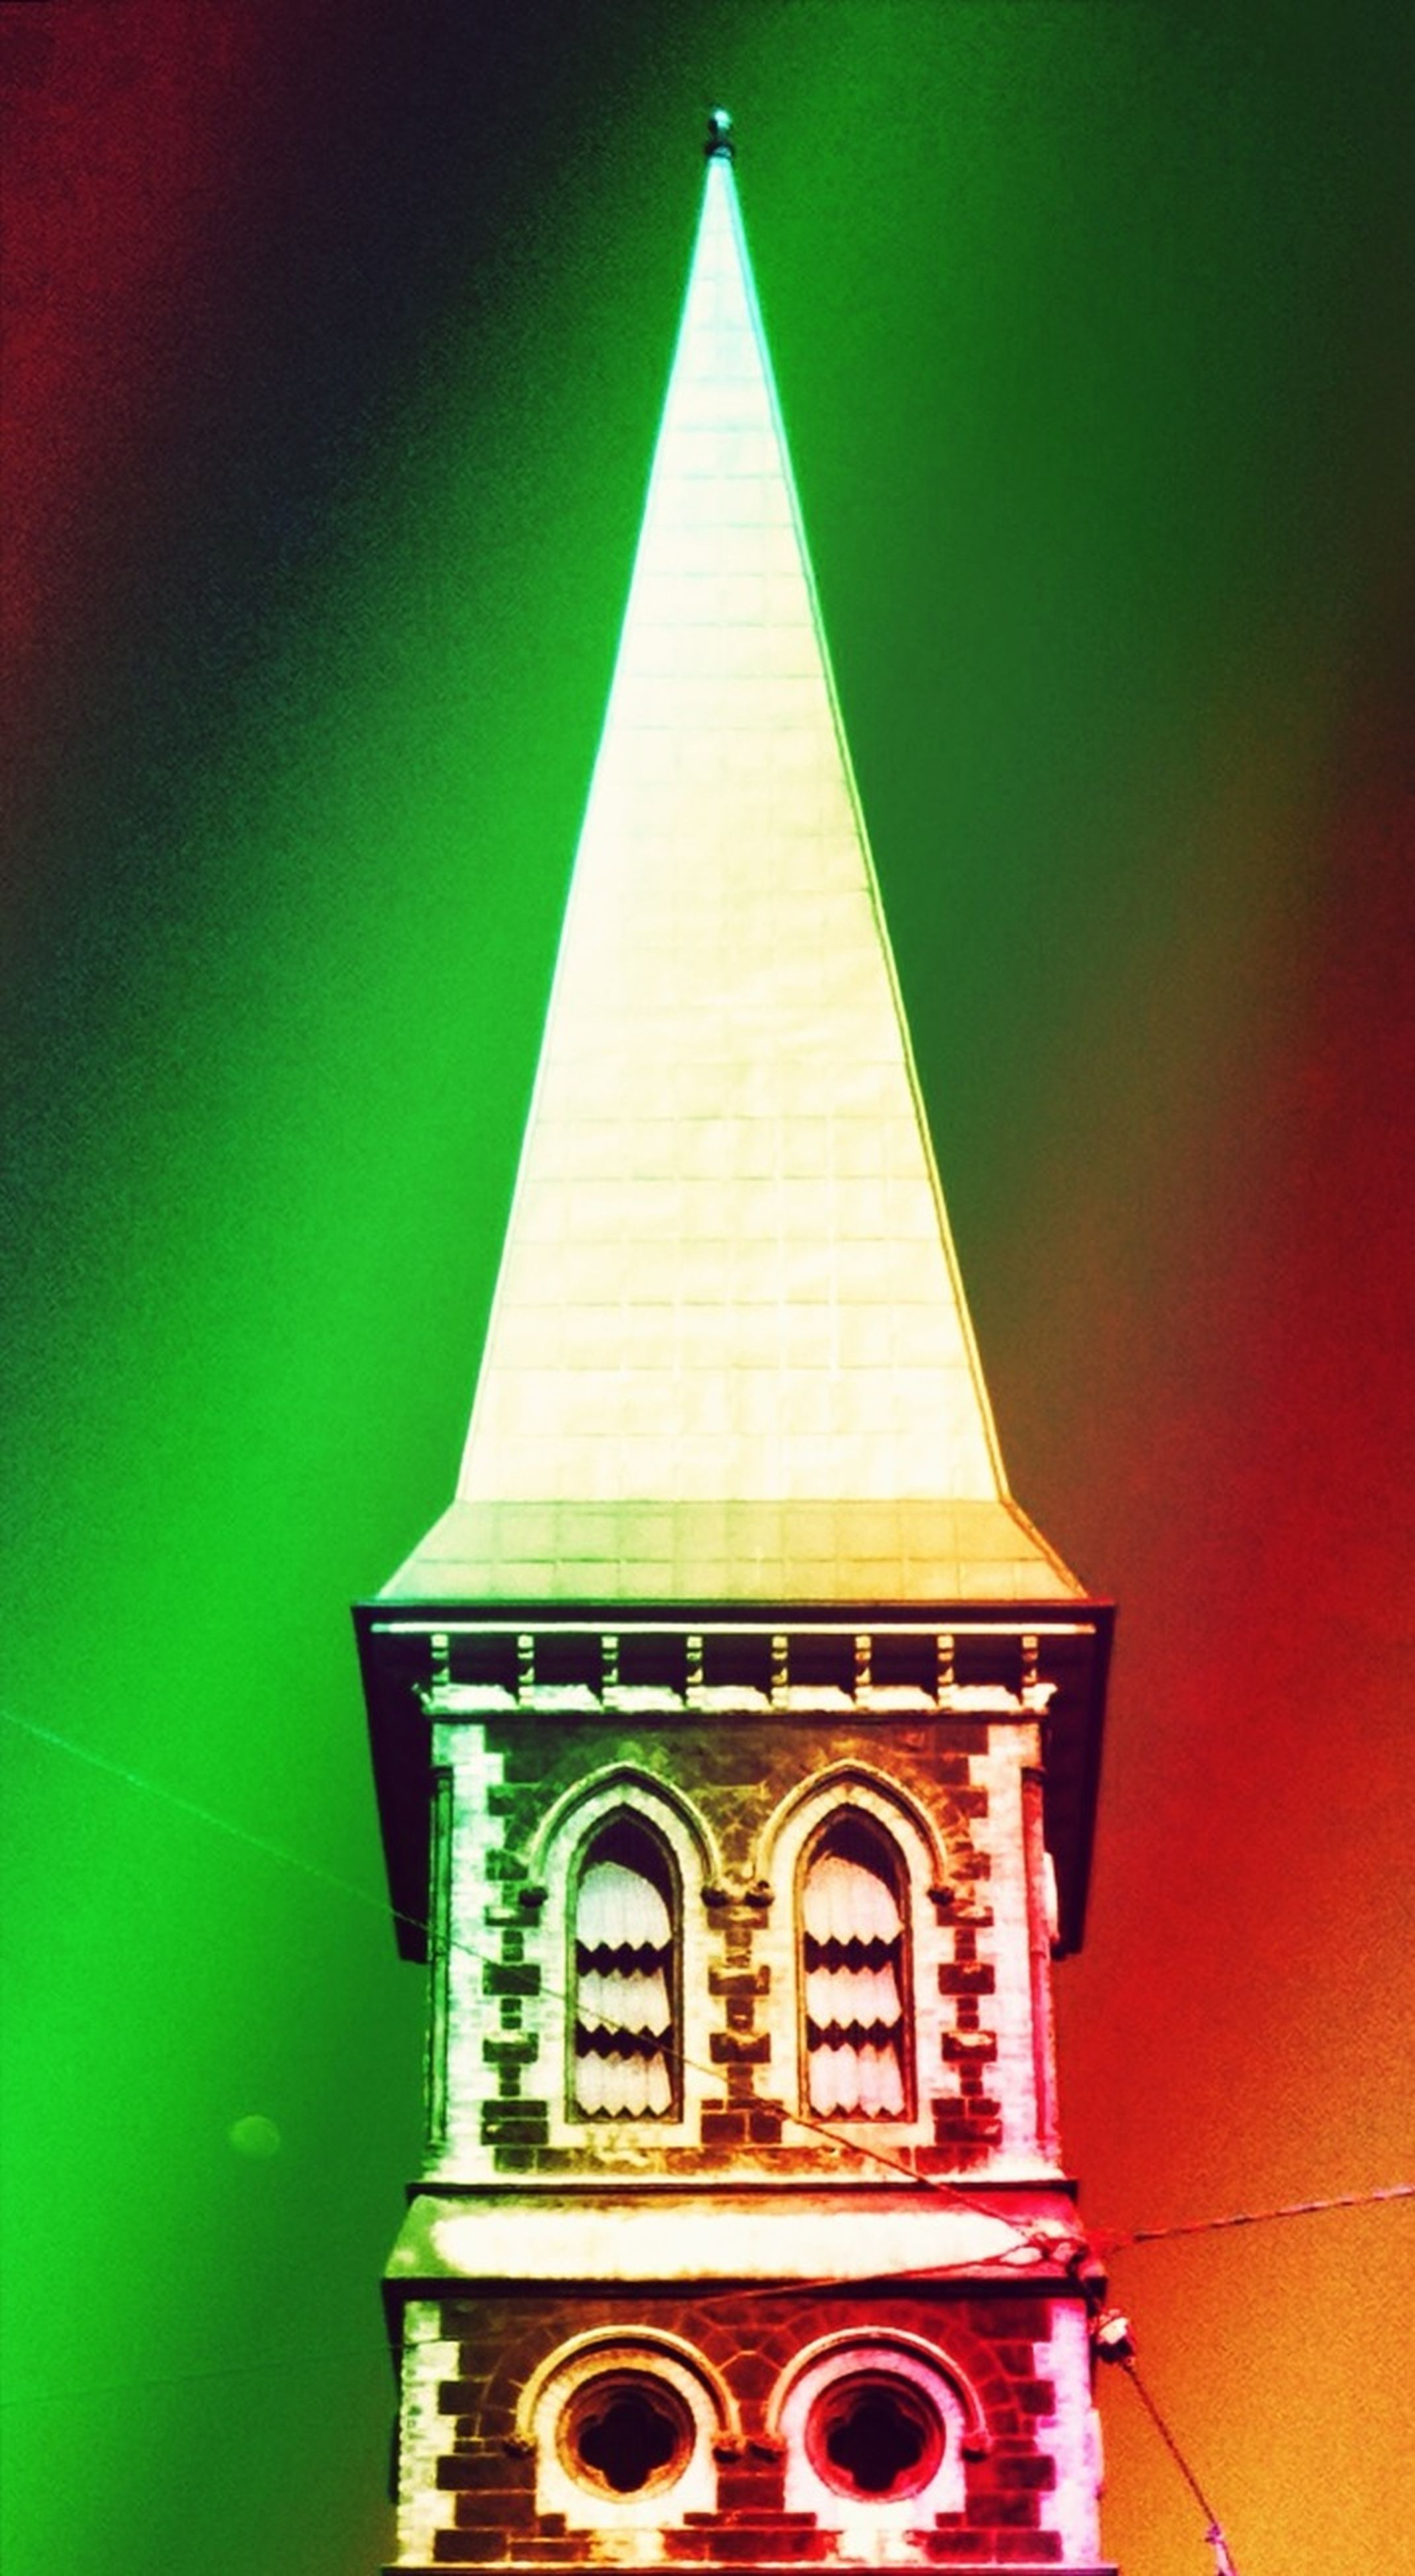 architecture, built structure, low angle view, building exterior, religion, illuminated, place of worship, no people, church, spirituality, outdoors, diminishing perspective, red, day, arch, wall - building feature, auto post production filter, green color